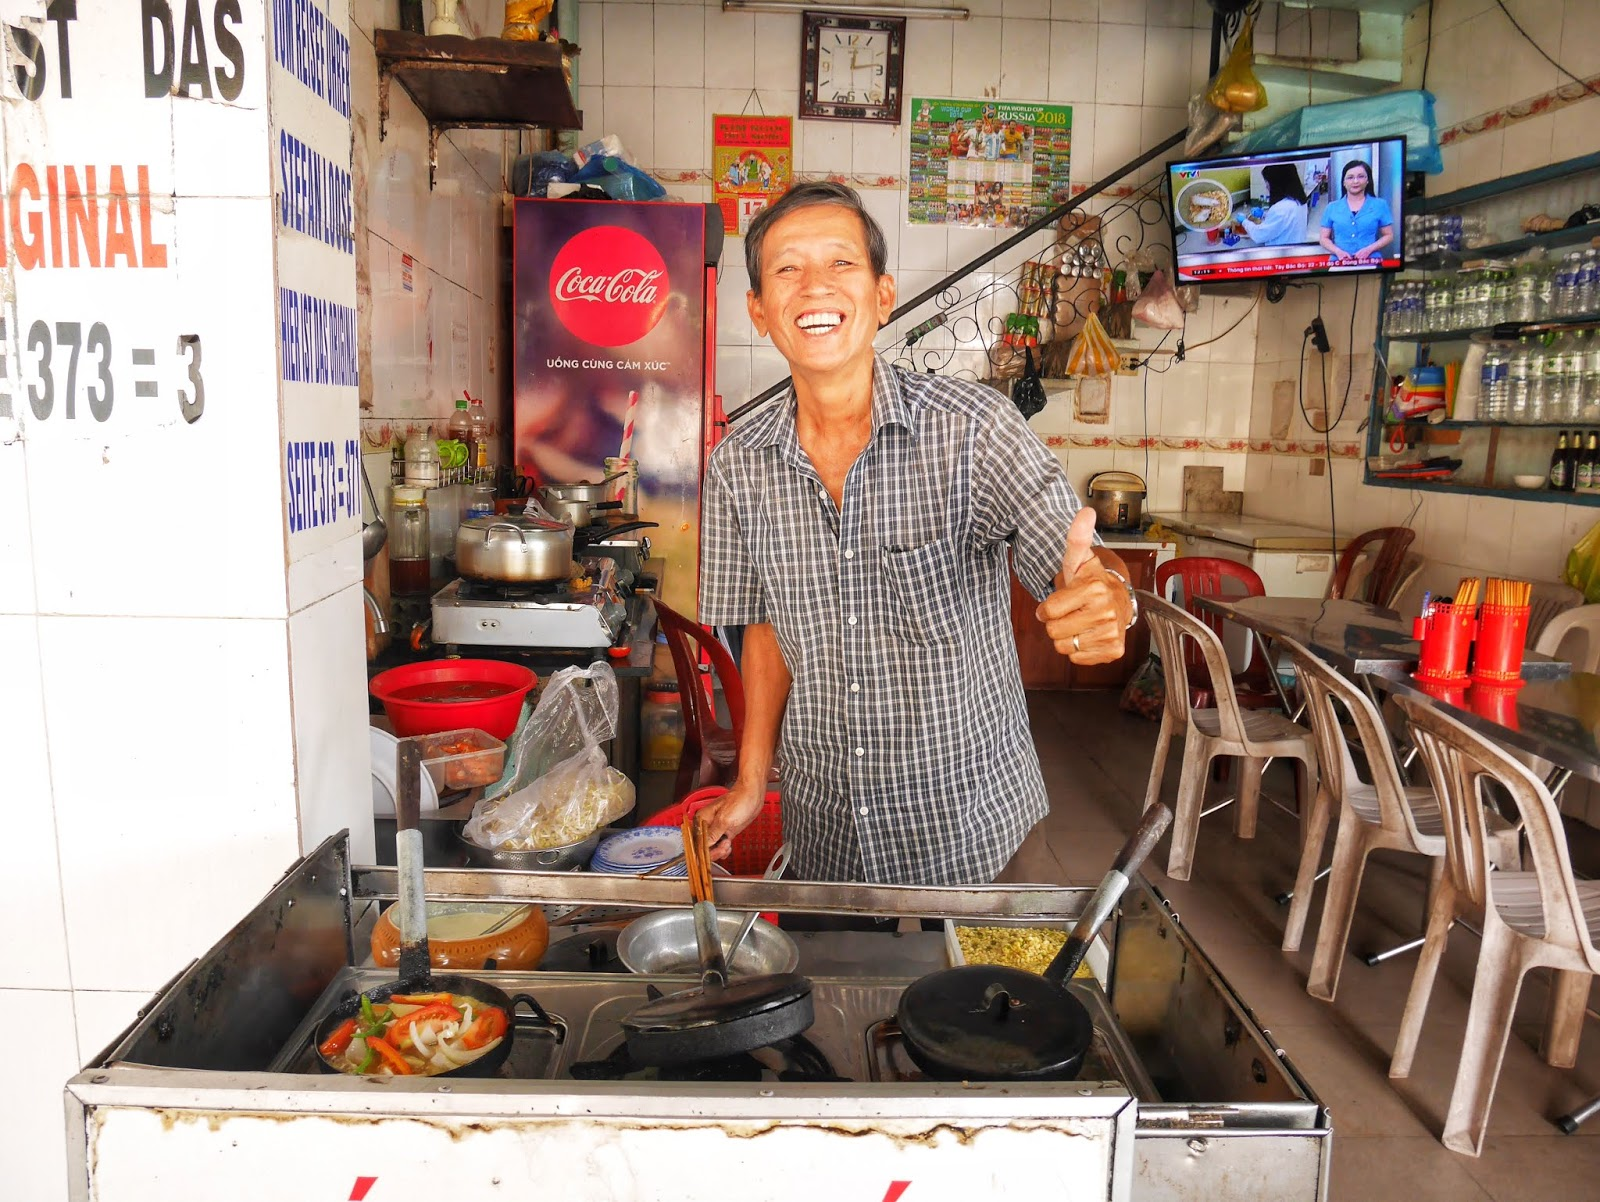 The most friendly restaurant owner at Lac Thanh, Hue